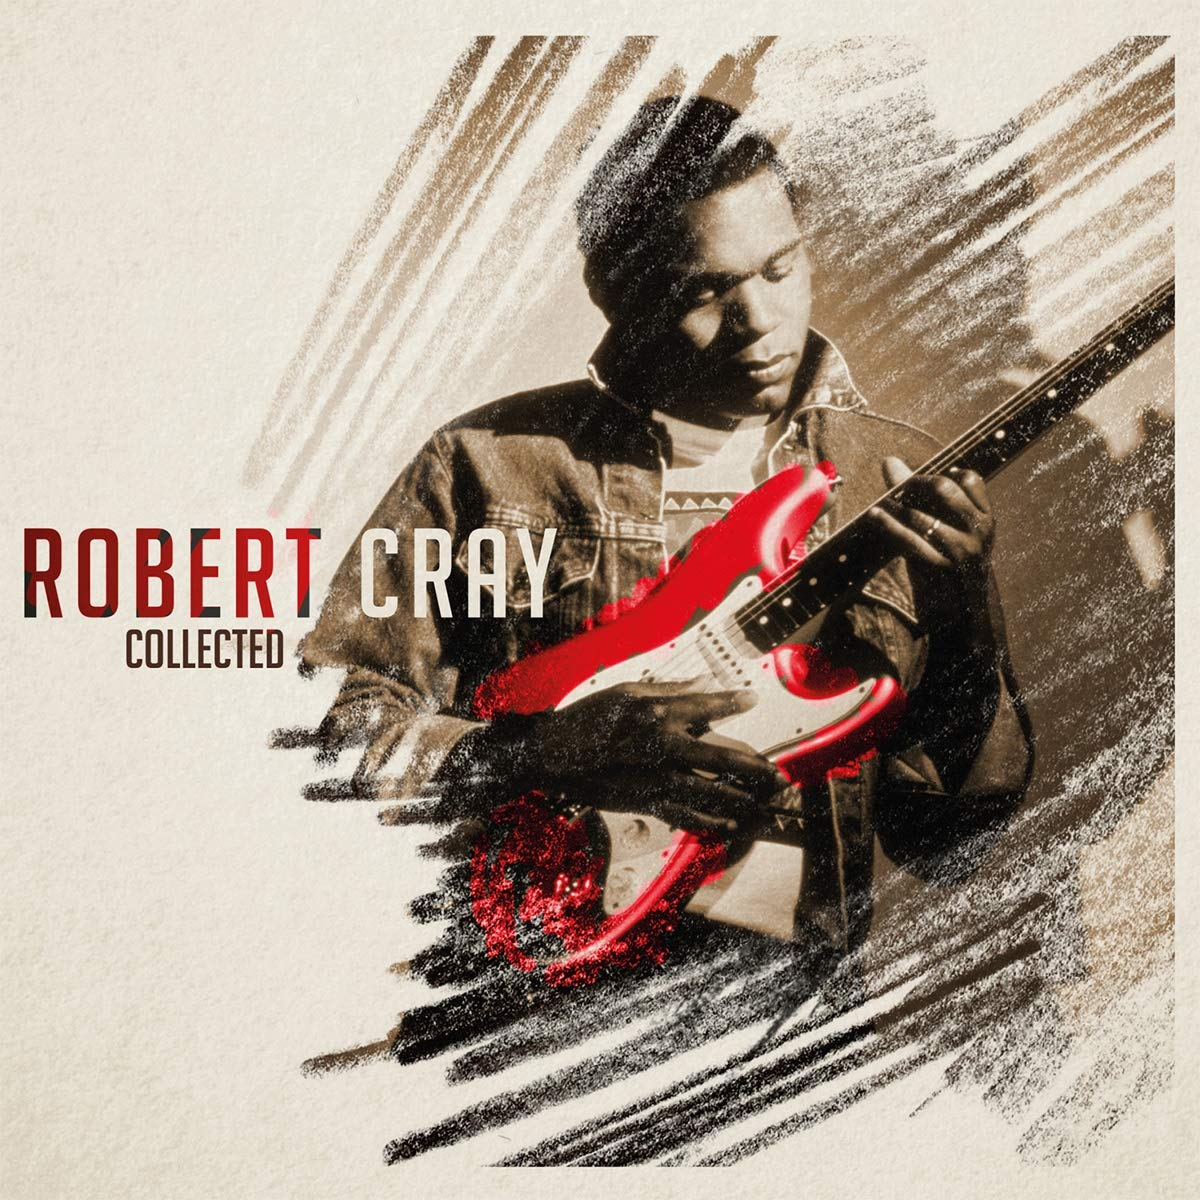 Robert Cray - Collected [2LP] (180 Gram Black Audiophile Vinyl, gatefold, liner notes, PVC sleeve, import) - Urban Vinyl | Records, Headphones, and more.